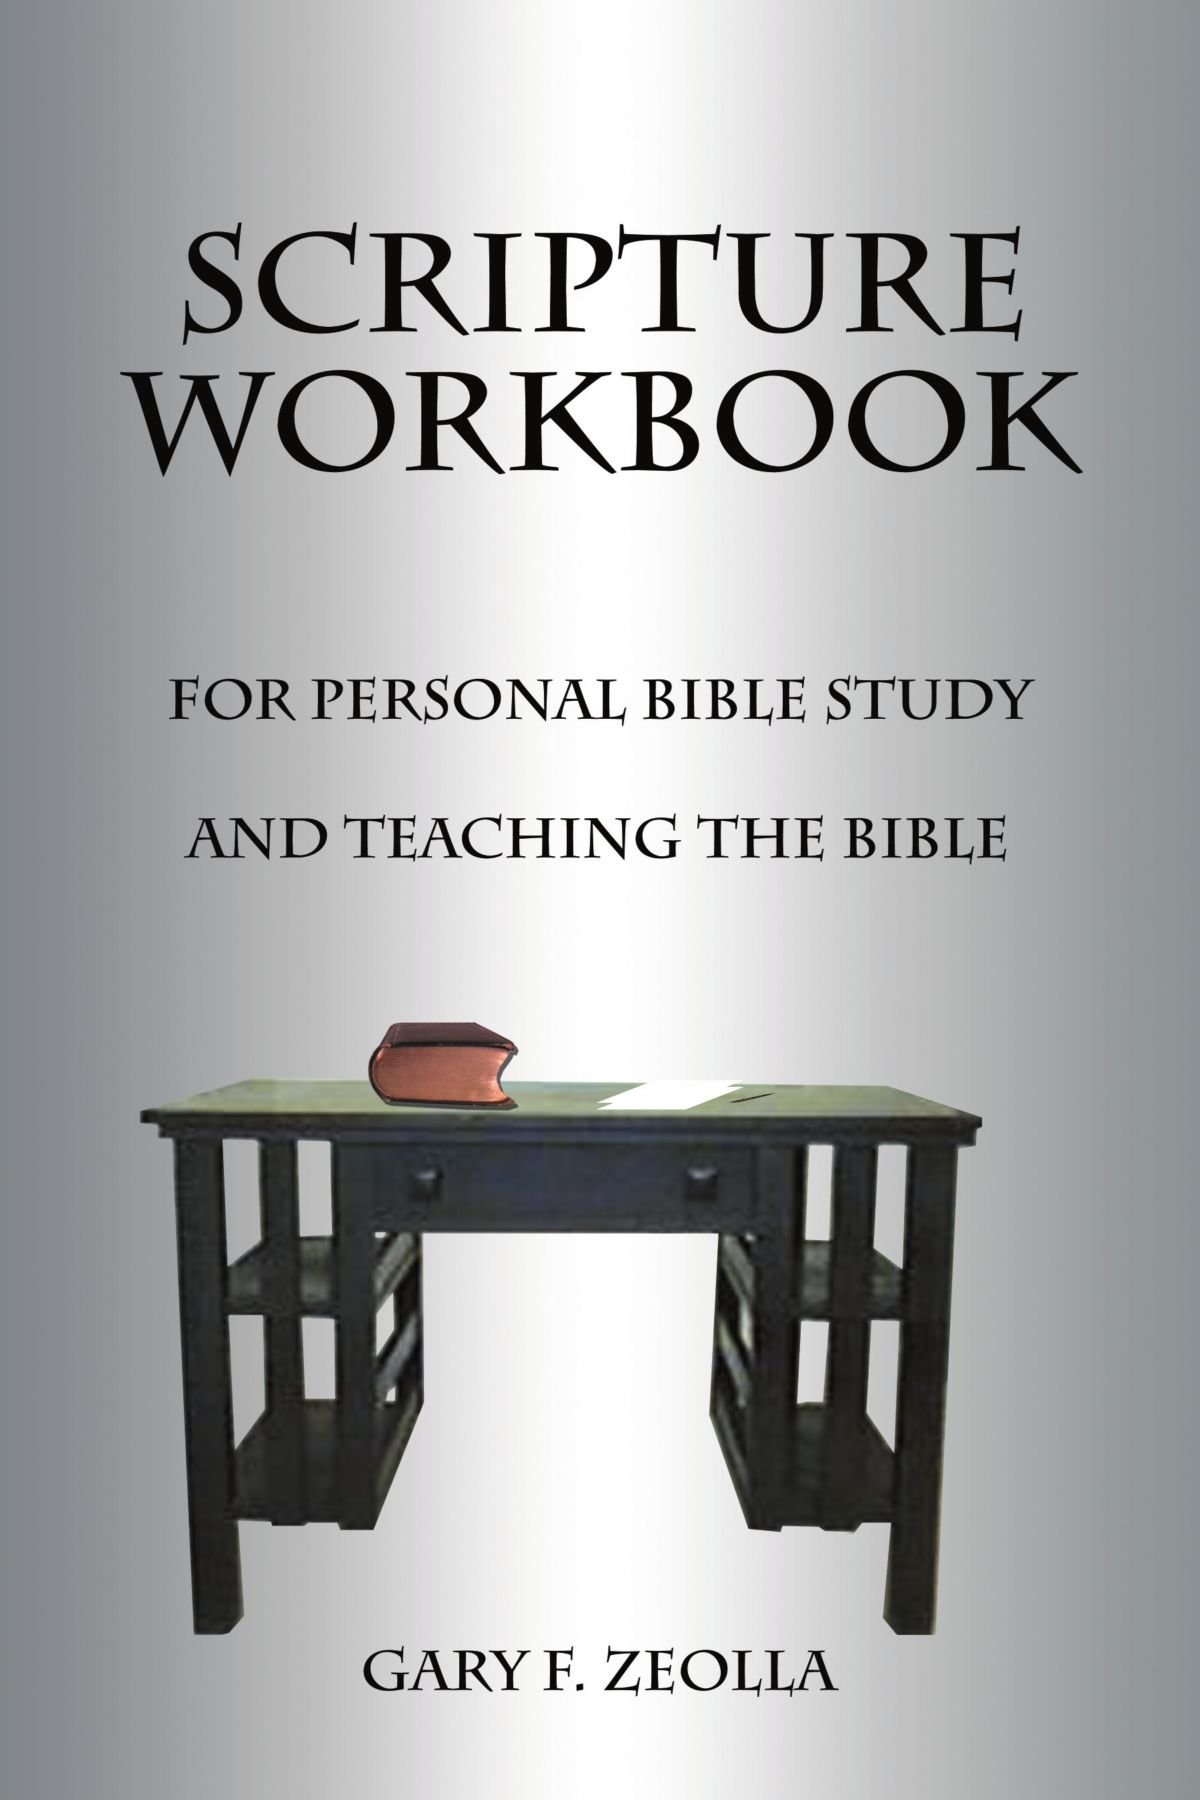 Scripture Workbook Personal Bible Teaching product image